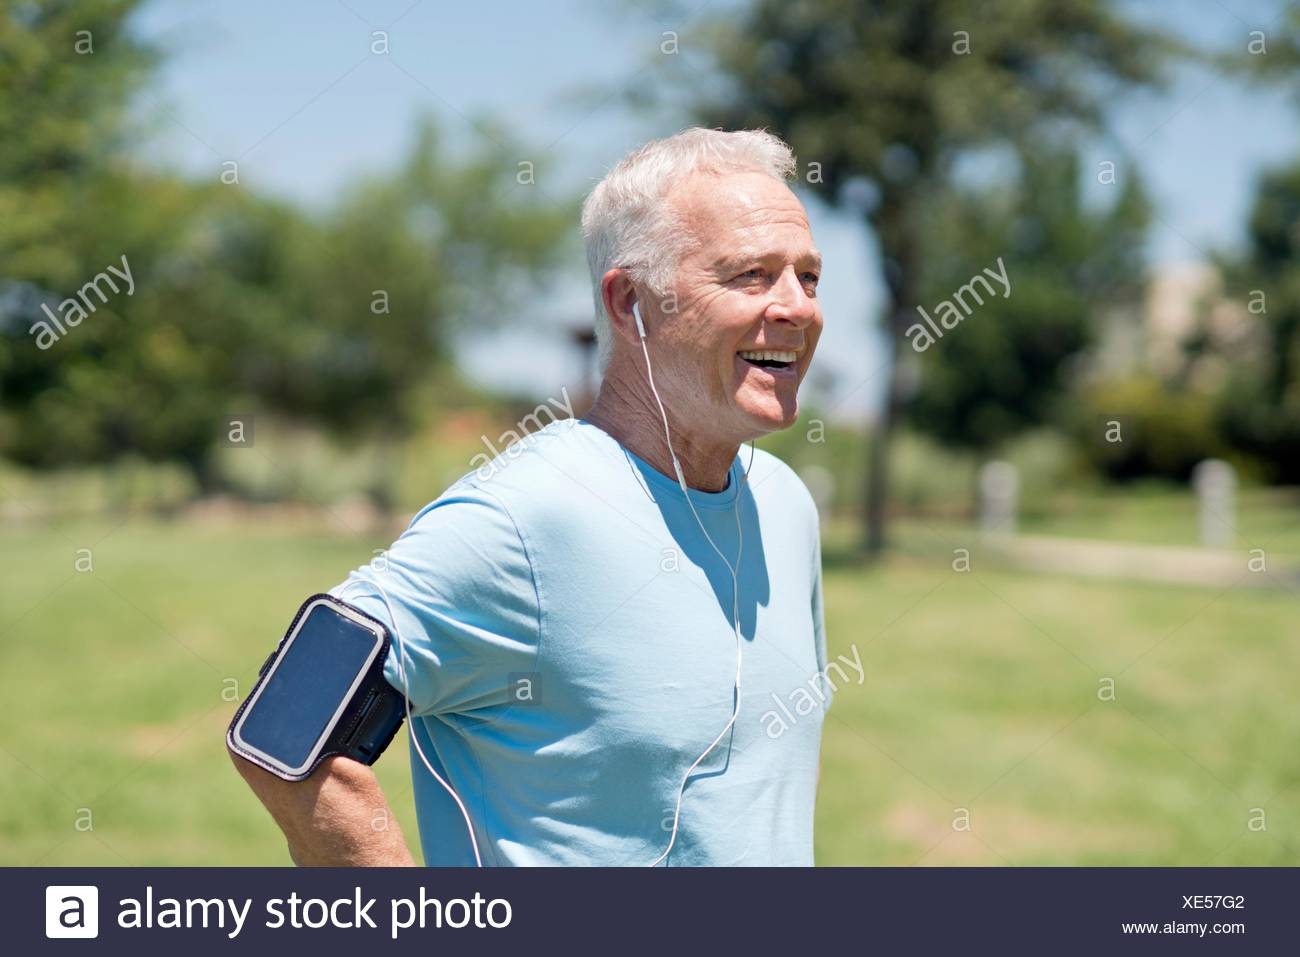 Senior man wearing smartphone on arm and earphones in park. - Stock Image